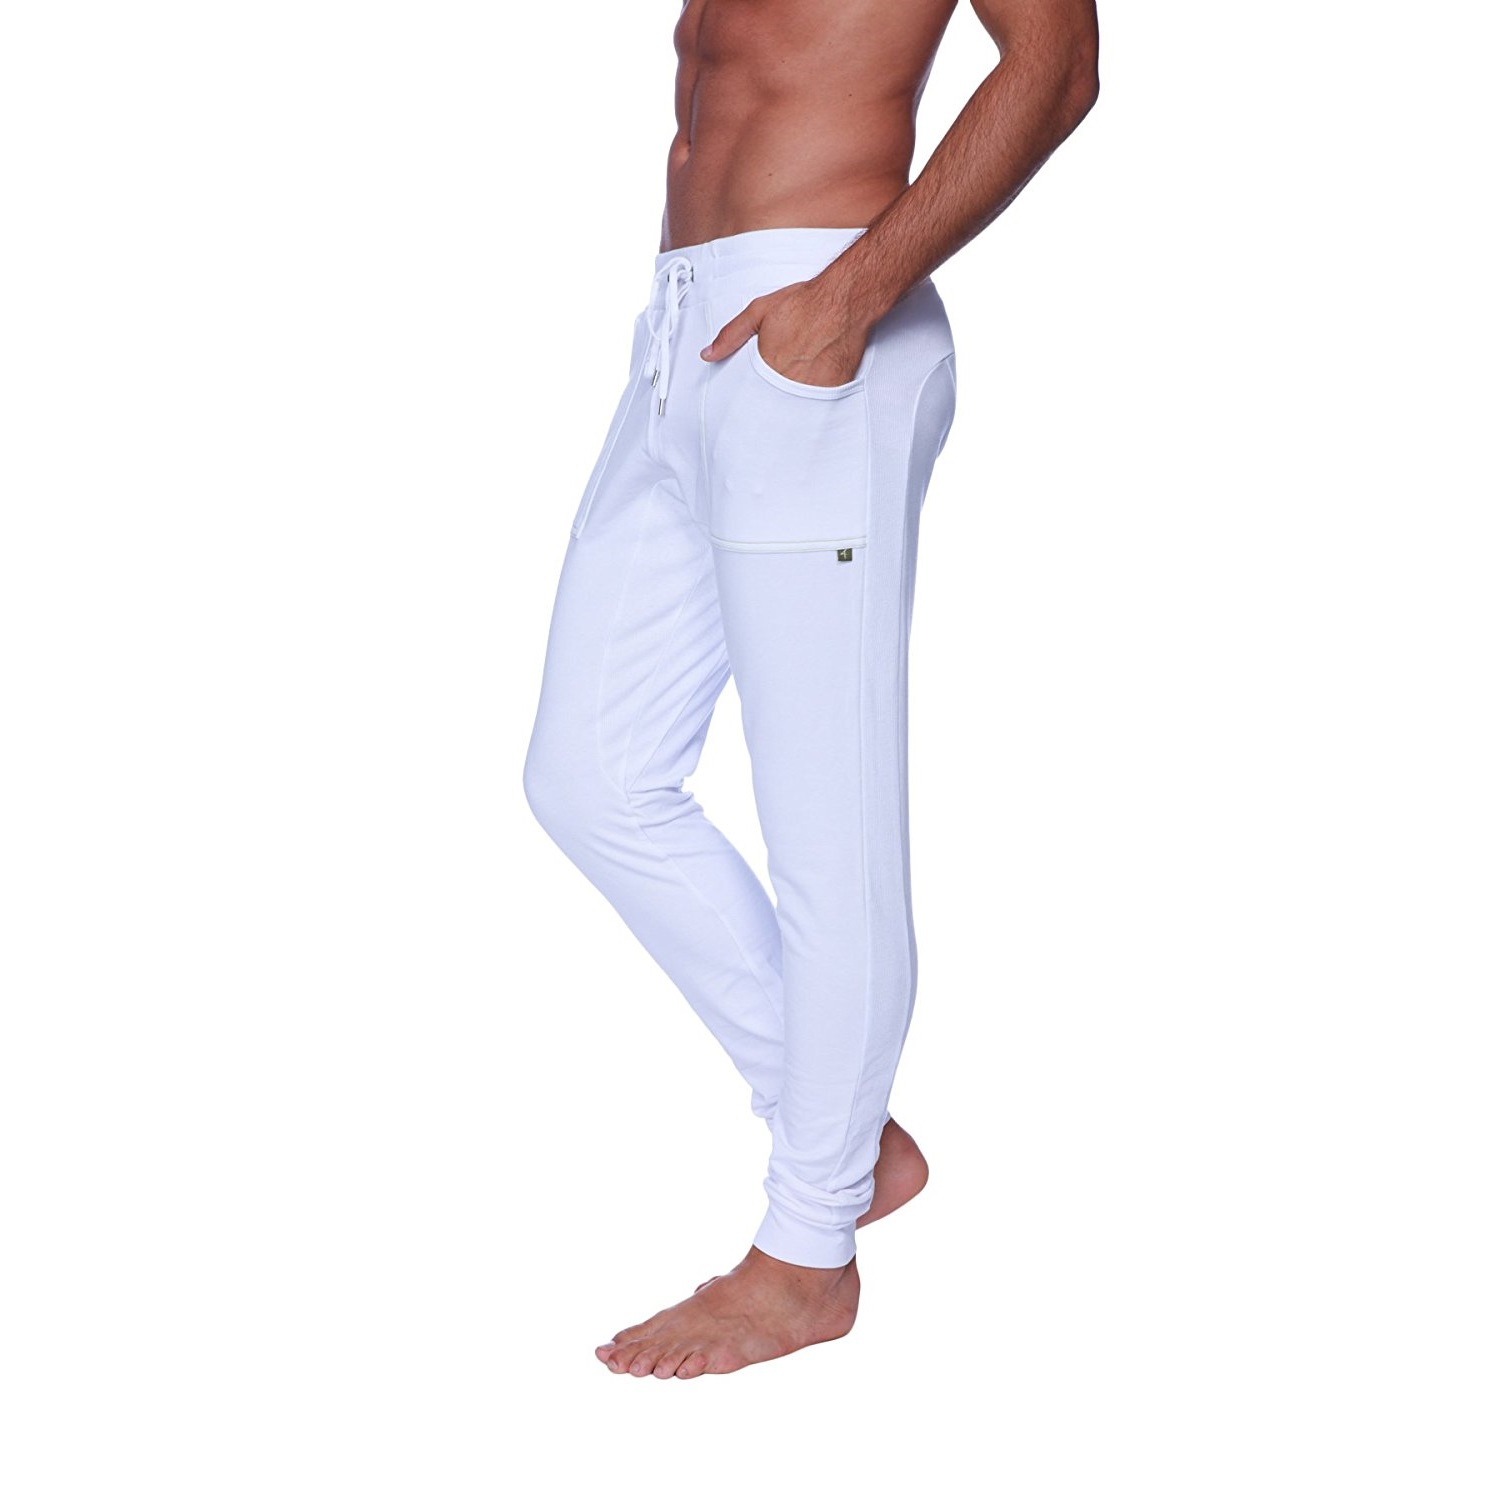 4-rth mens long cuffed jogger yoga pants White